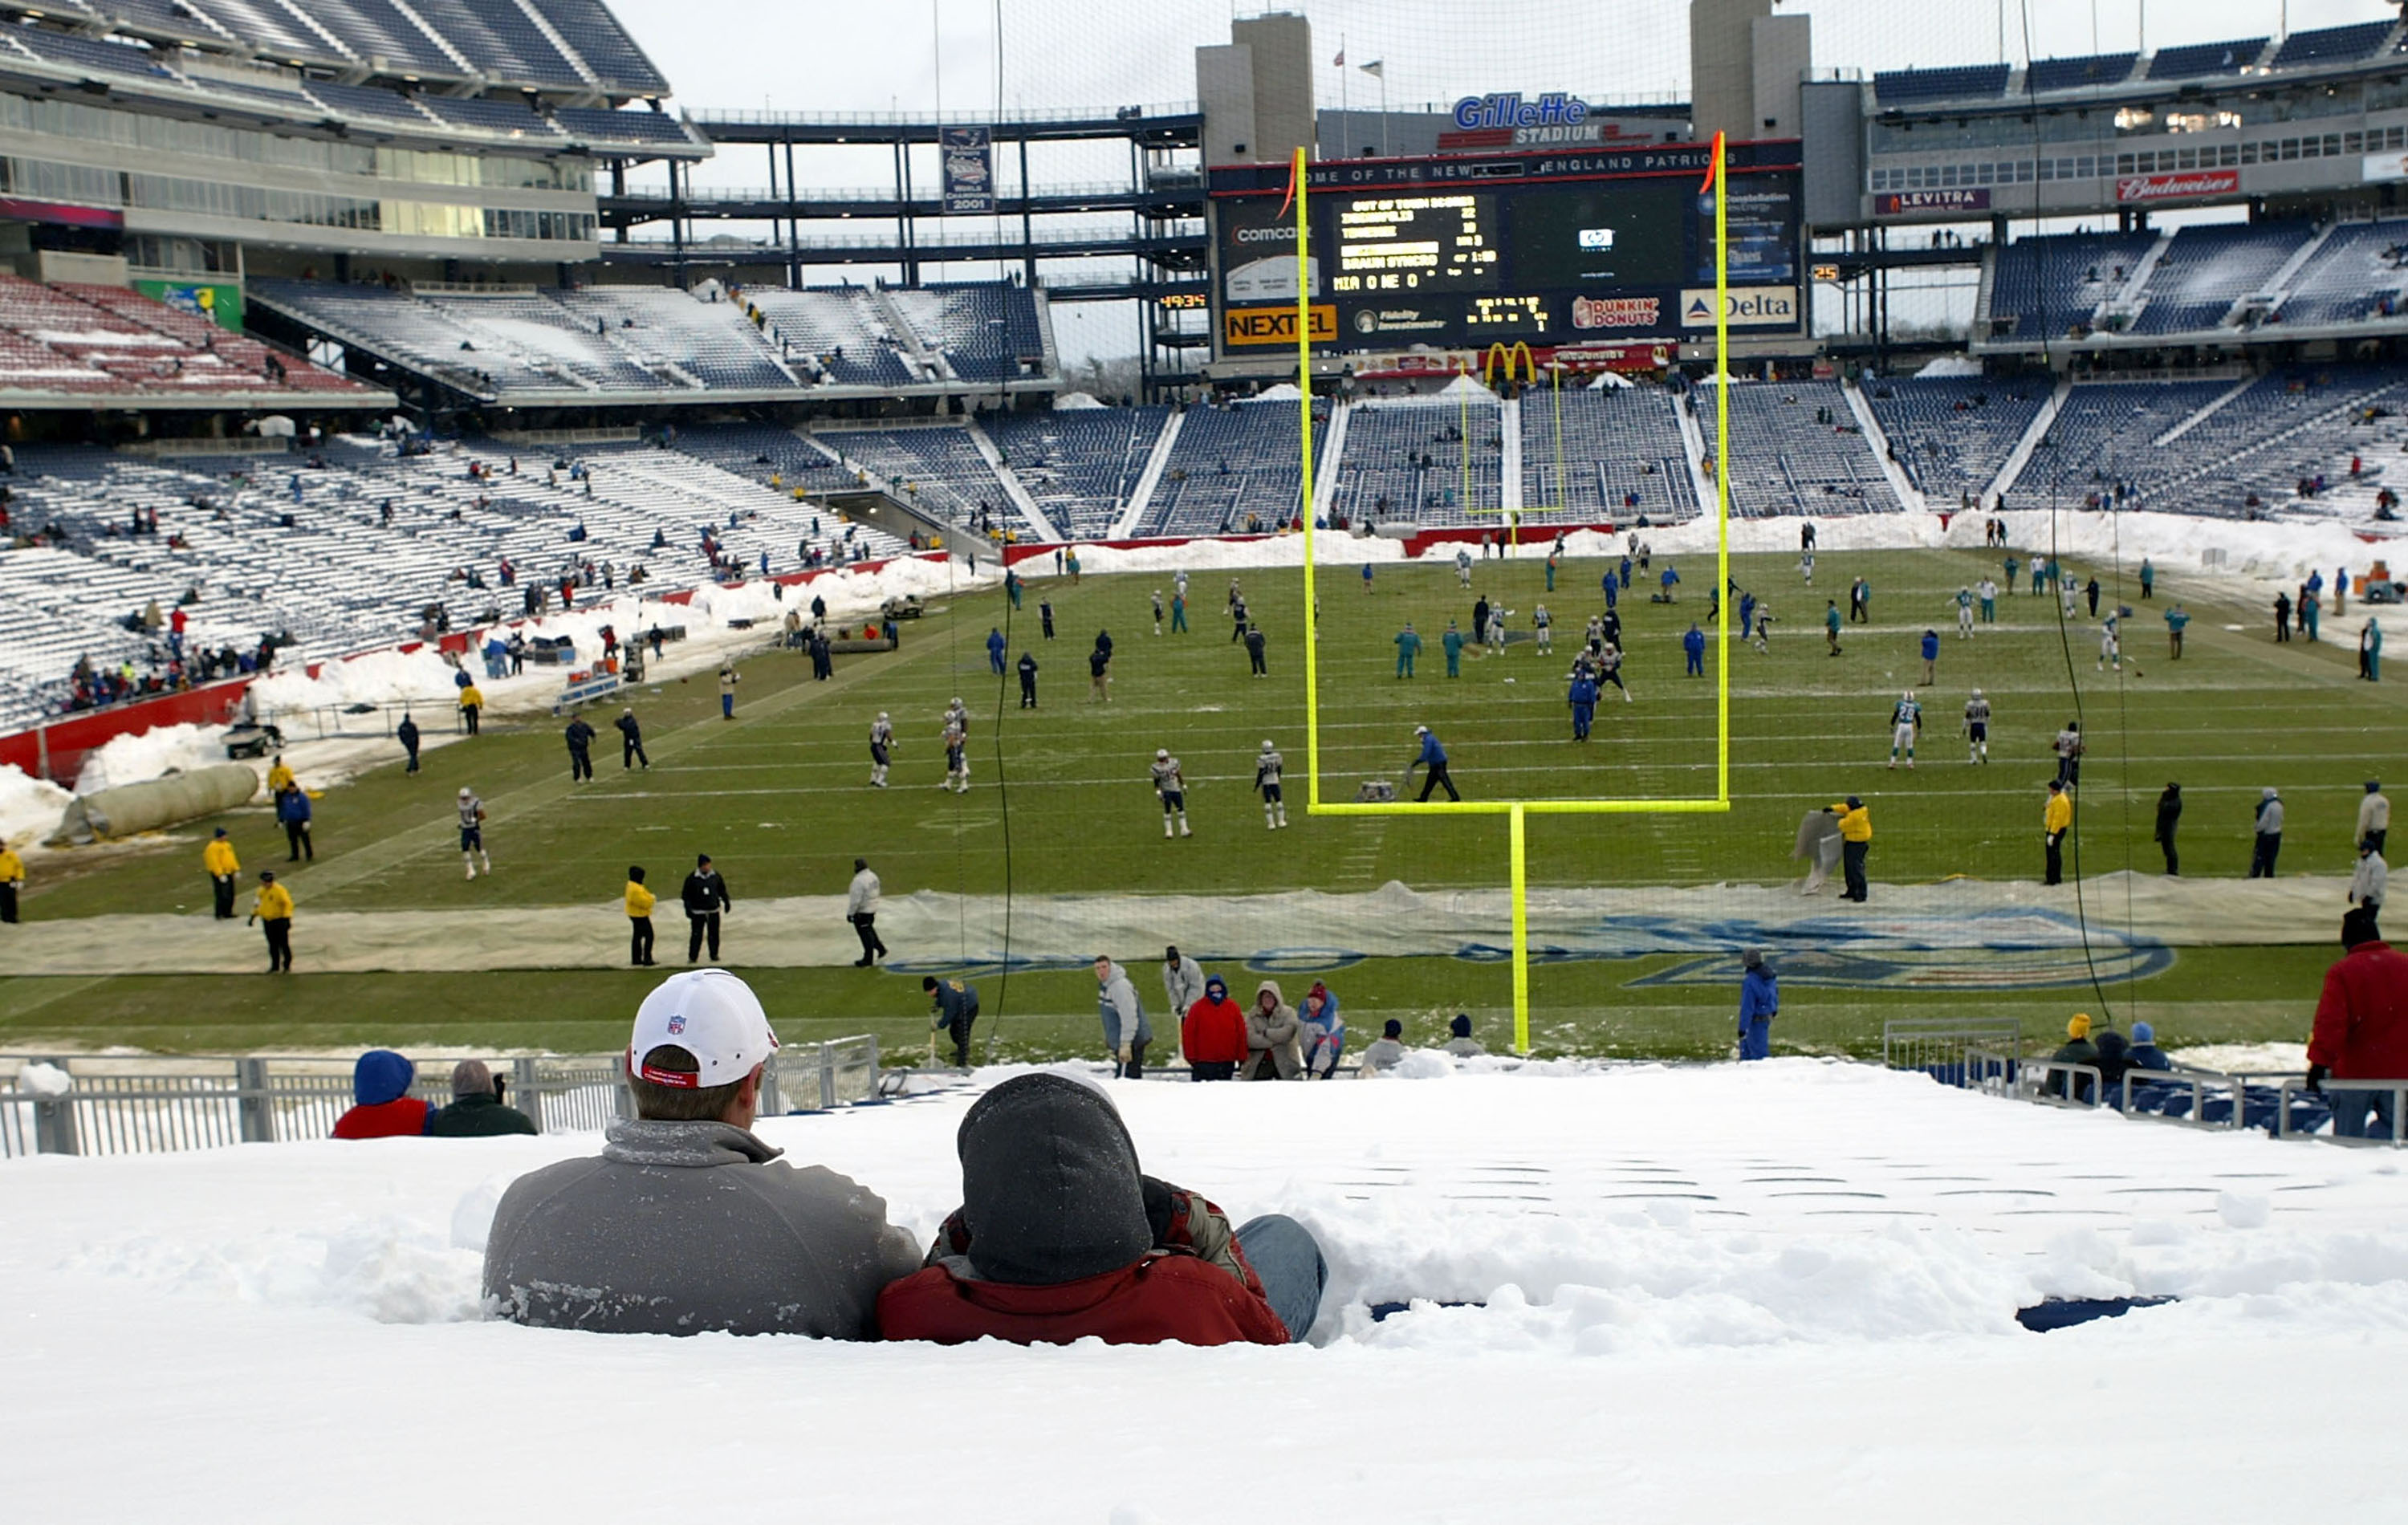 FOXBORO, MA - DECEMBER 7:  Fans sit in snow-covered seats before the Miami Dolphins game against the New England Patriots on December 7, 2003 at Gillette Stadium in Foxboro, Massachusetts.  (Photo by Ezra Shaw/Getty Images)